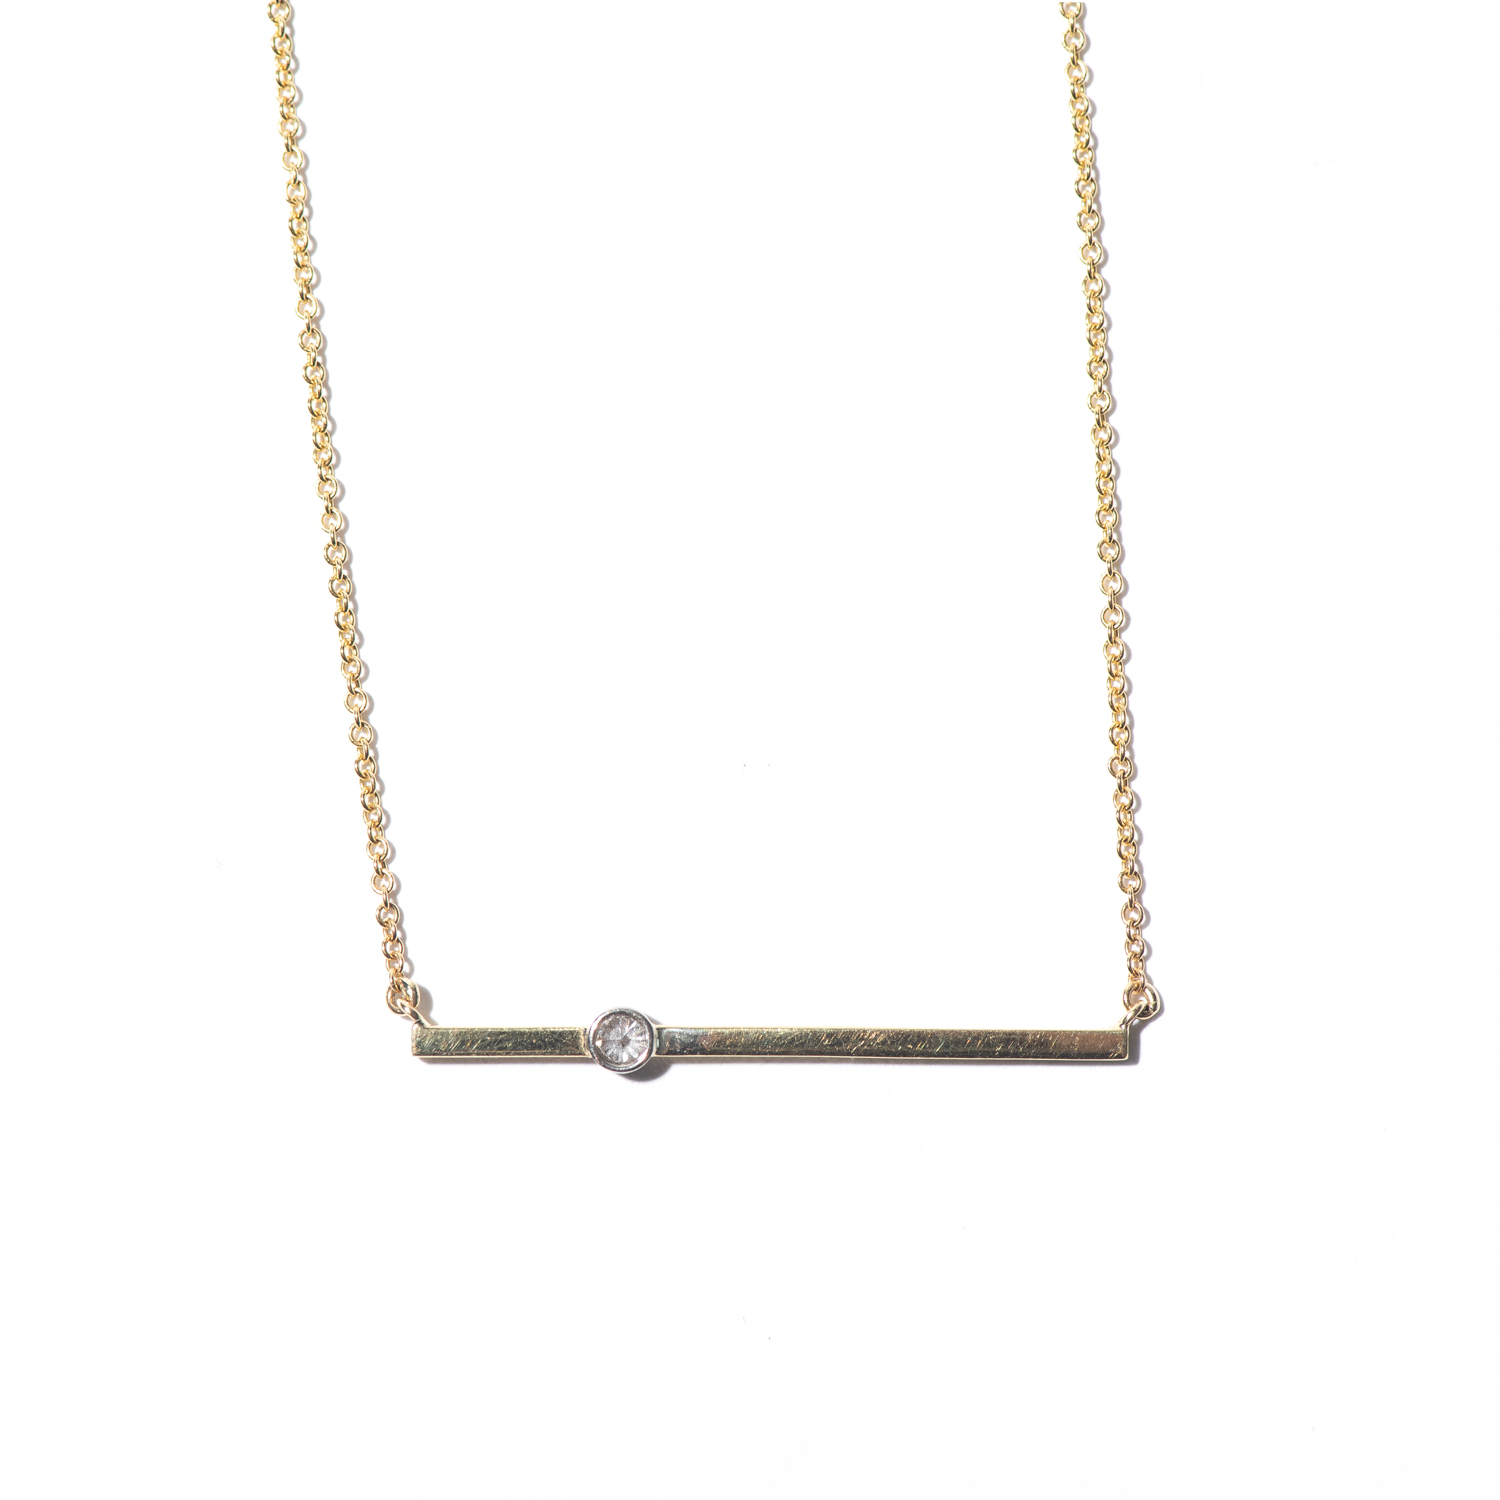 Design Twenty One. - Yellow Gold Bar Necklace with Diamond Detail